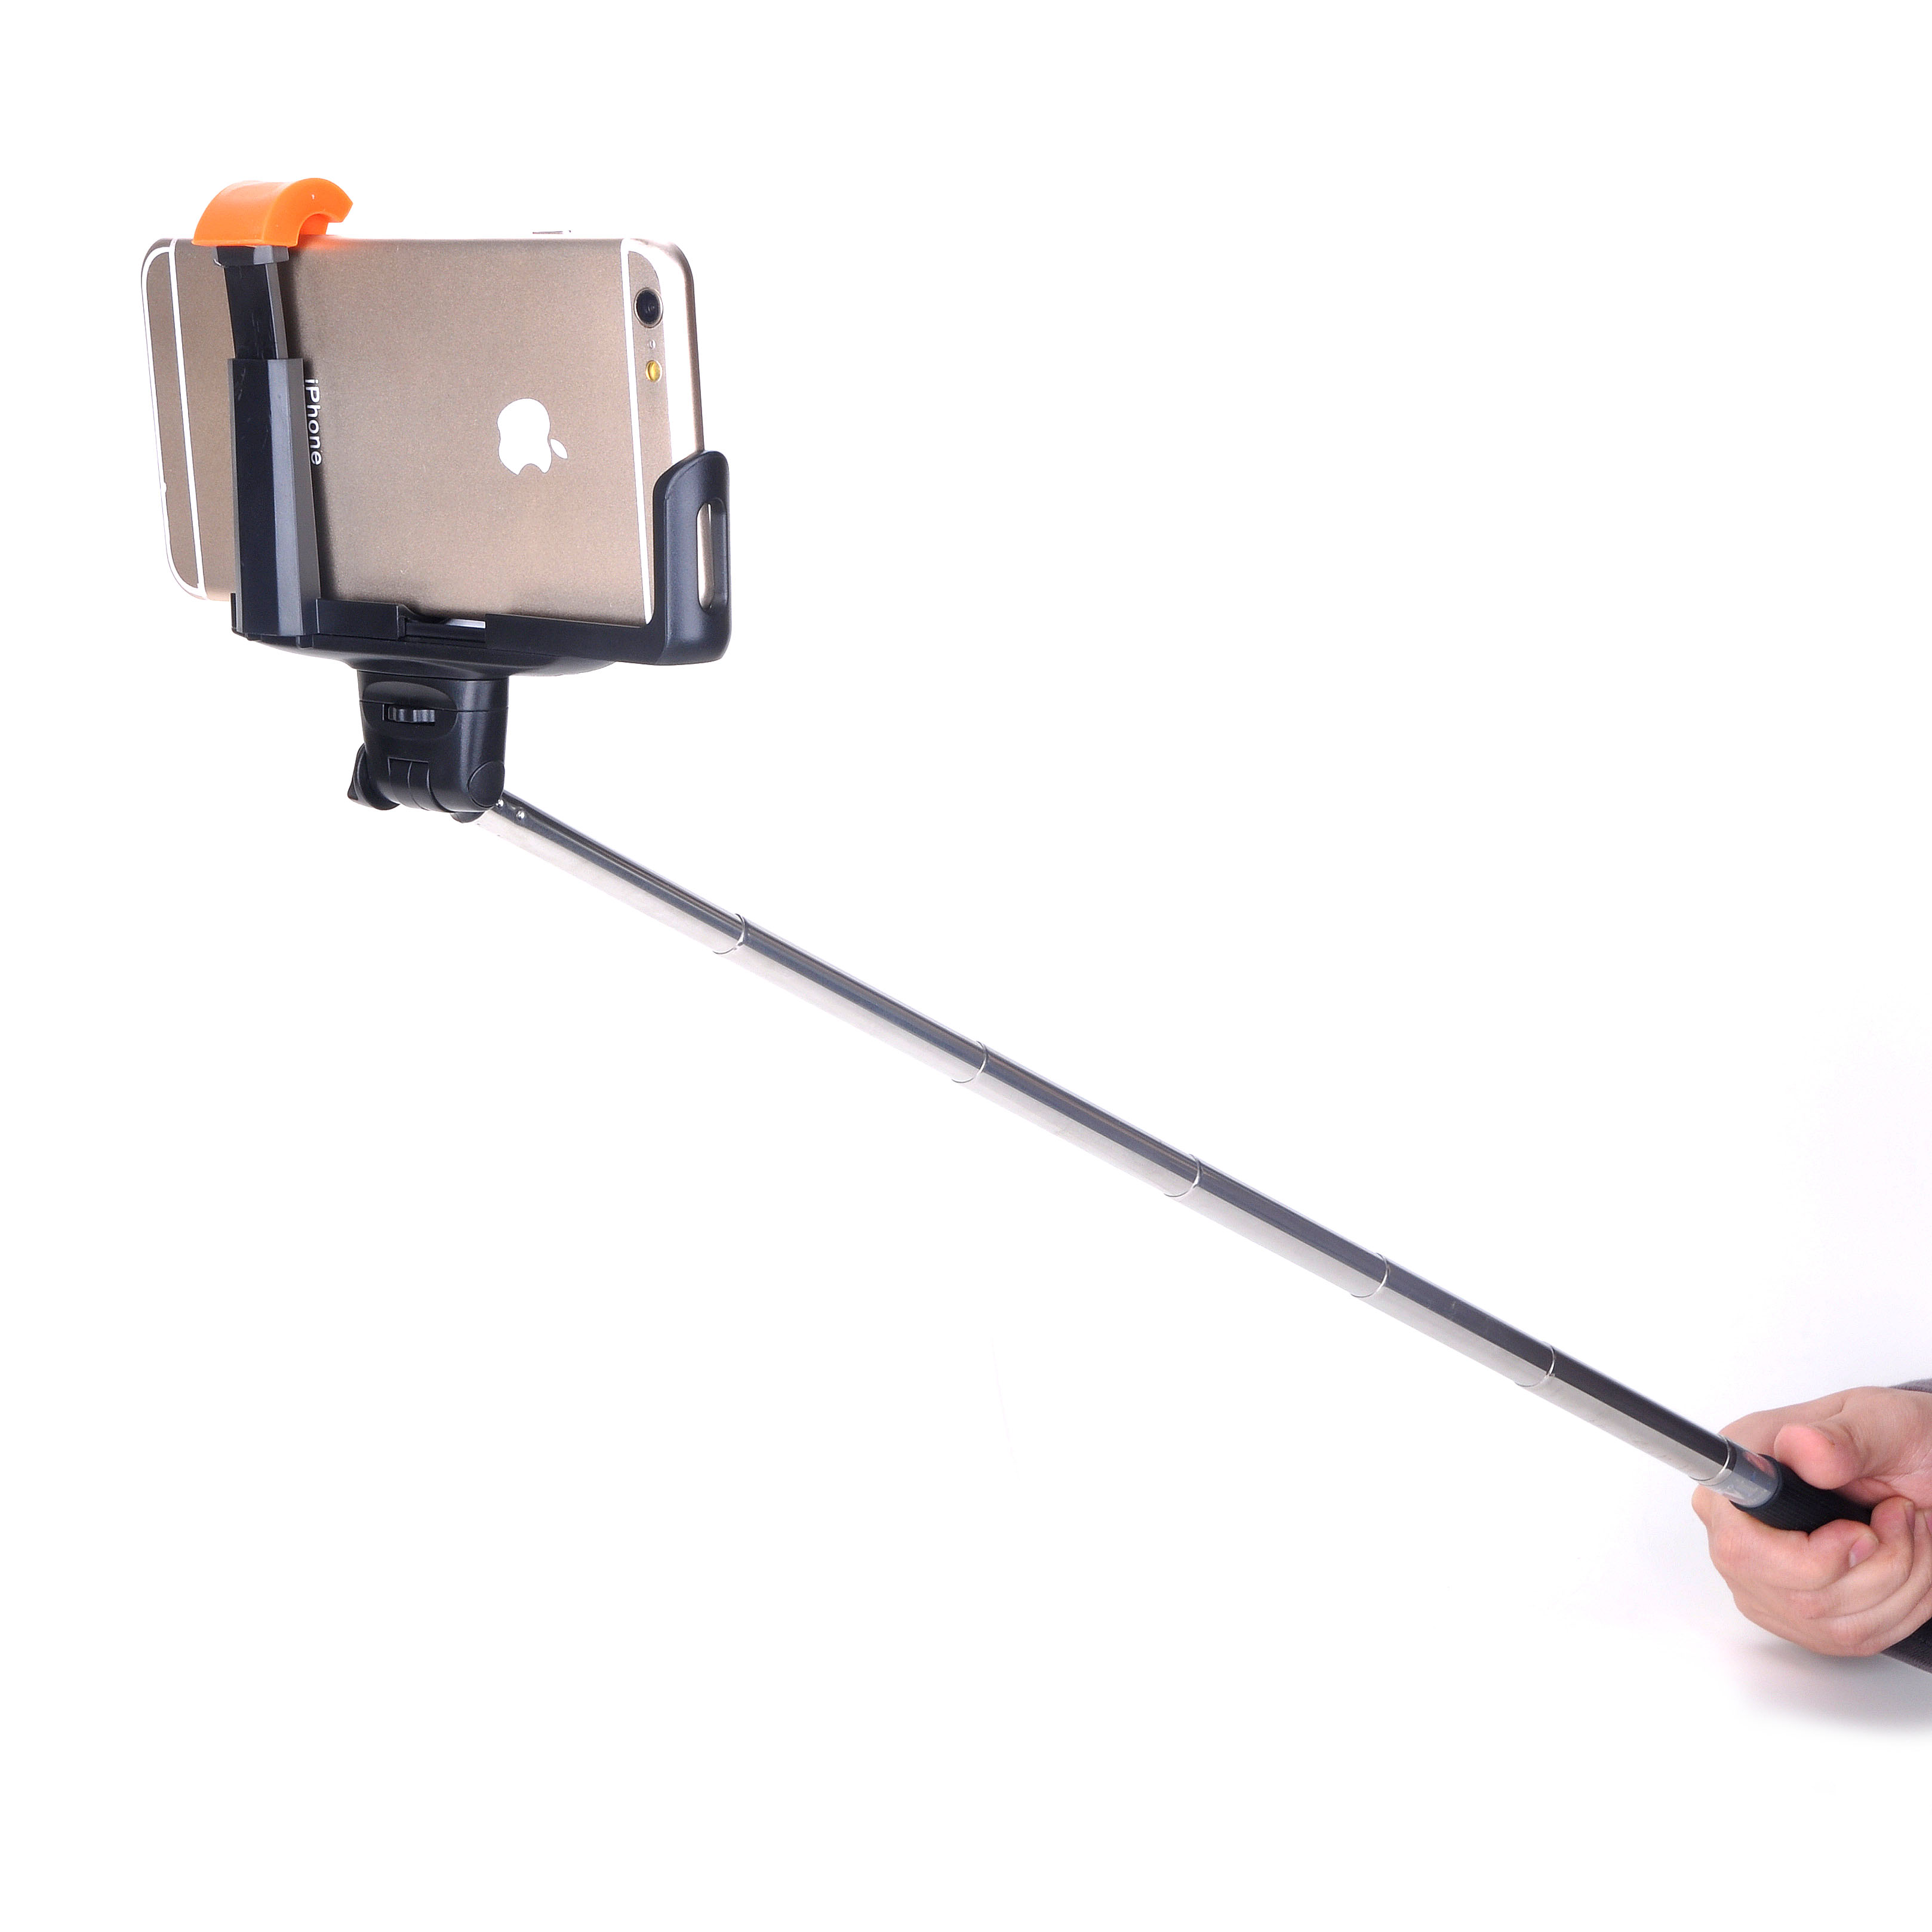 See more Hot 100 Selfie Sticks